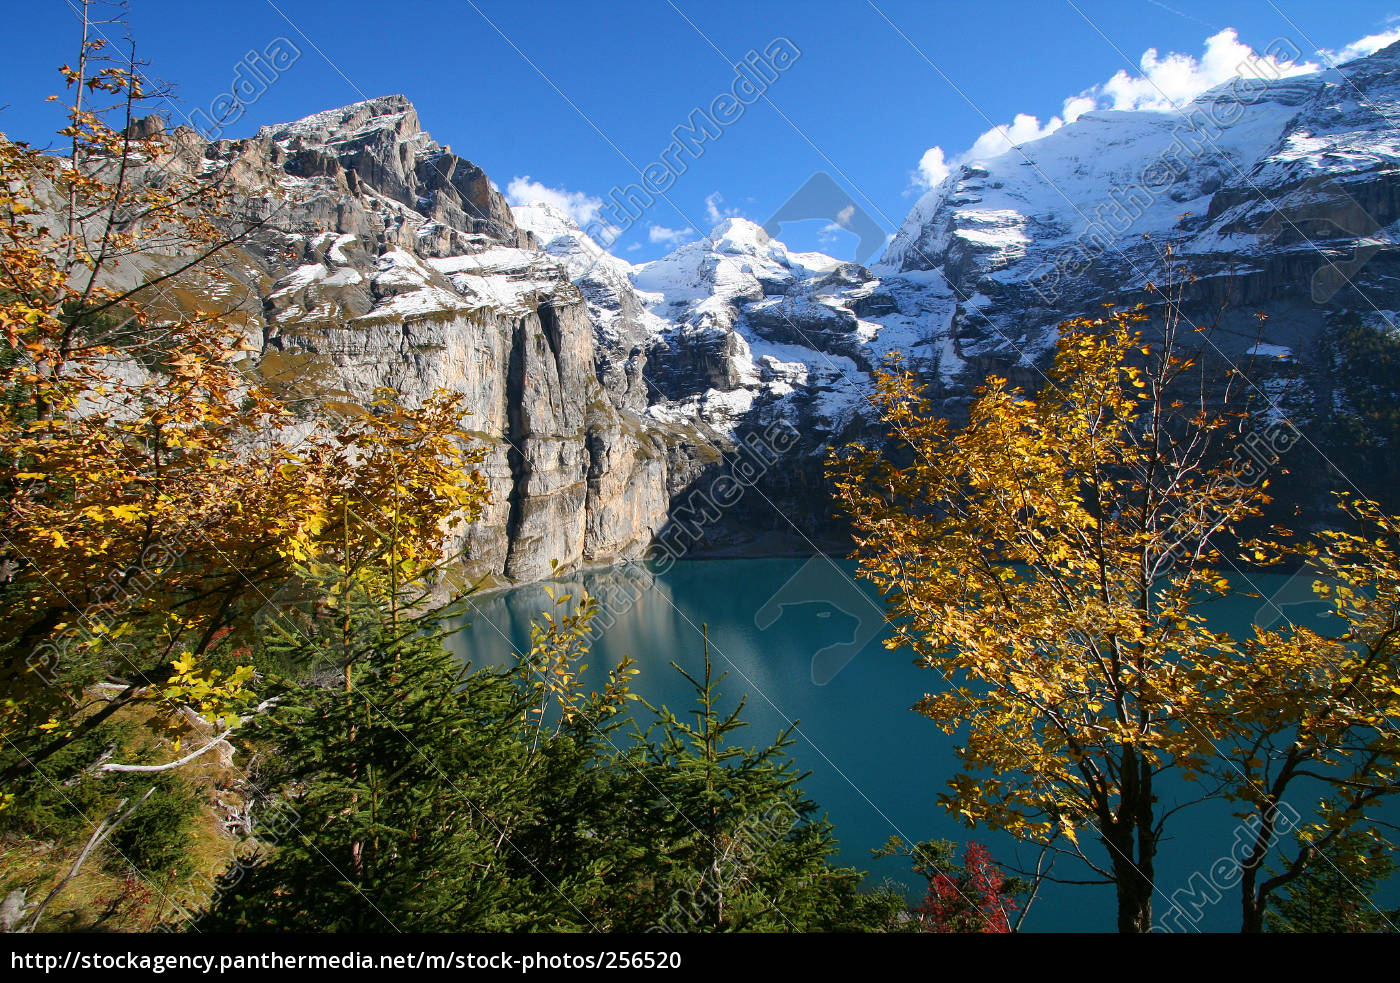 autumn, day, at, oeschinensee - 256520